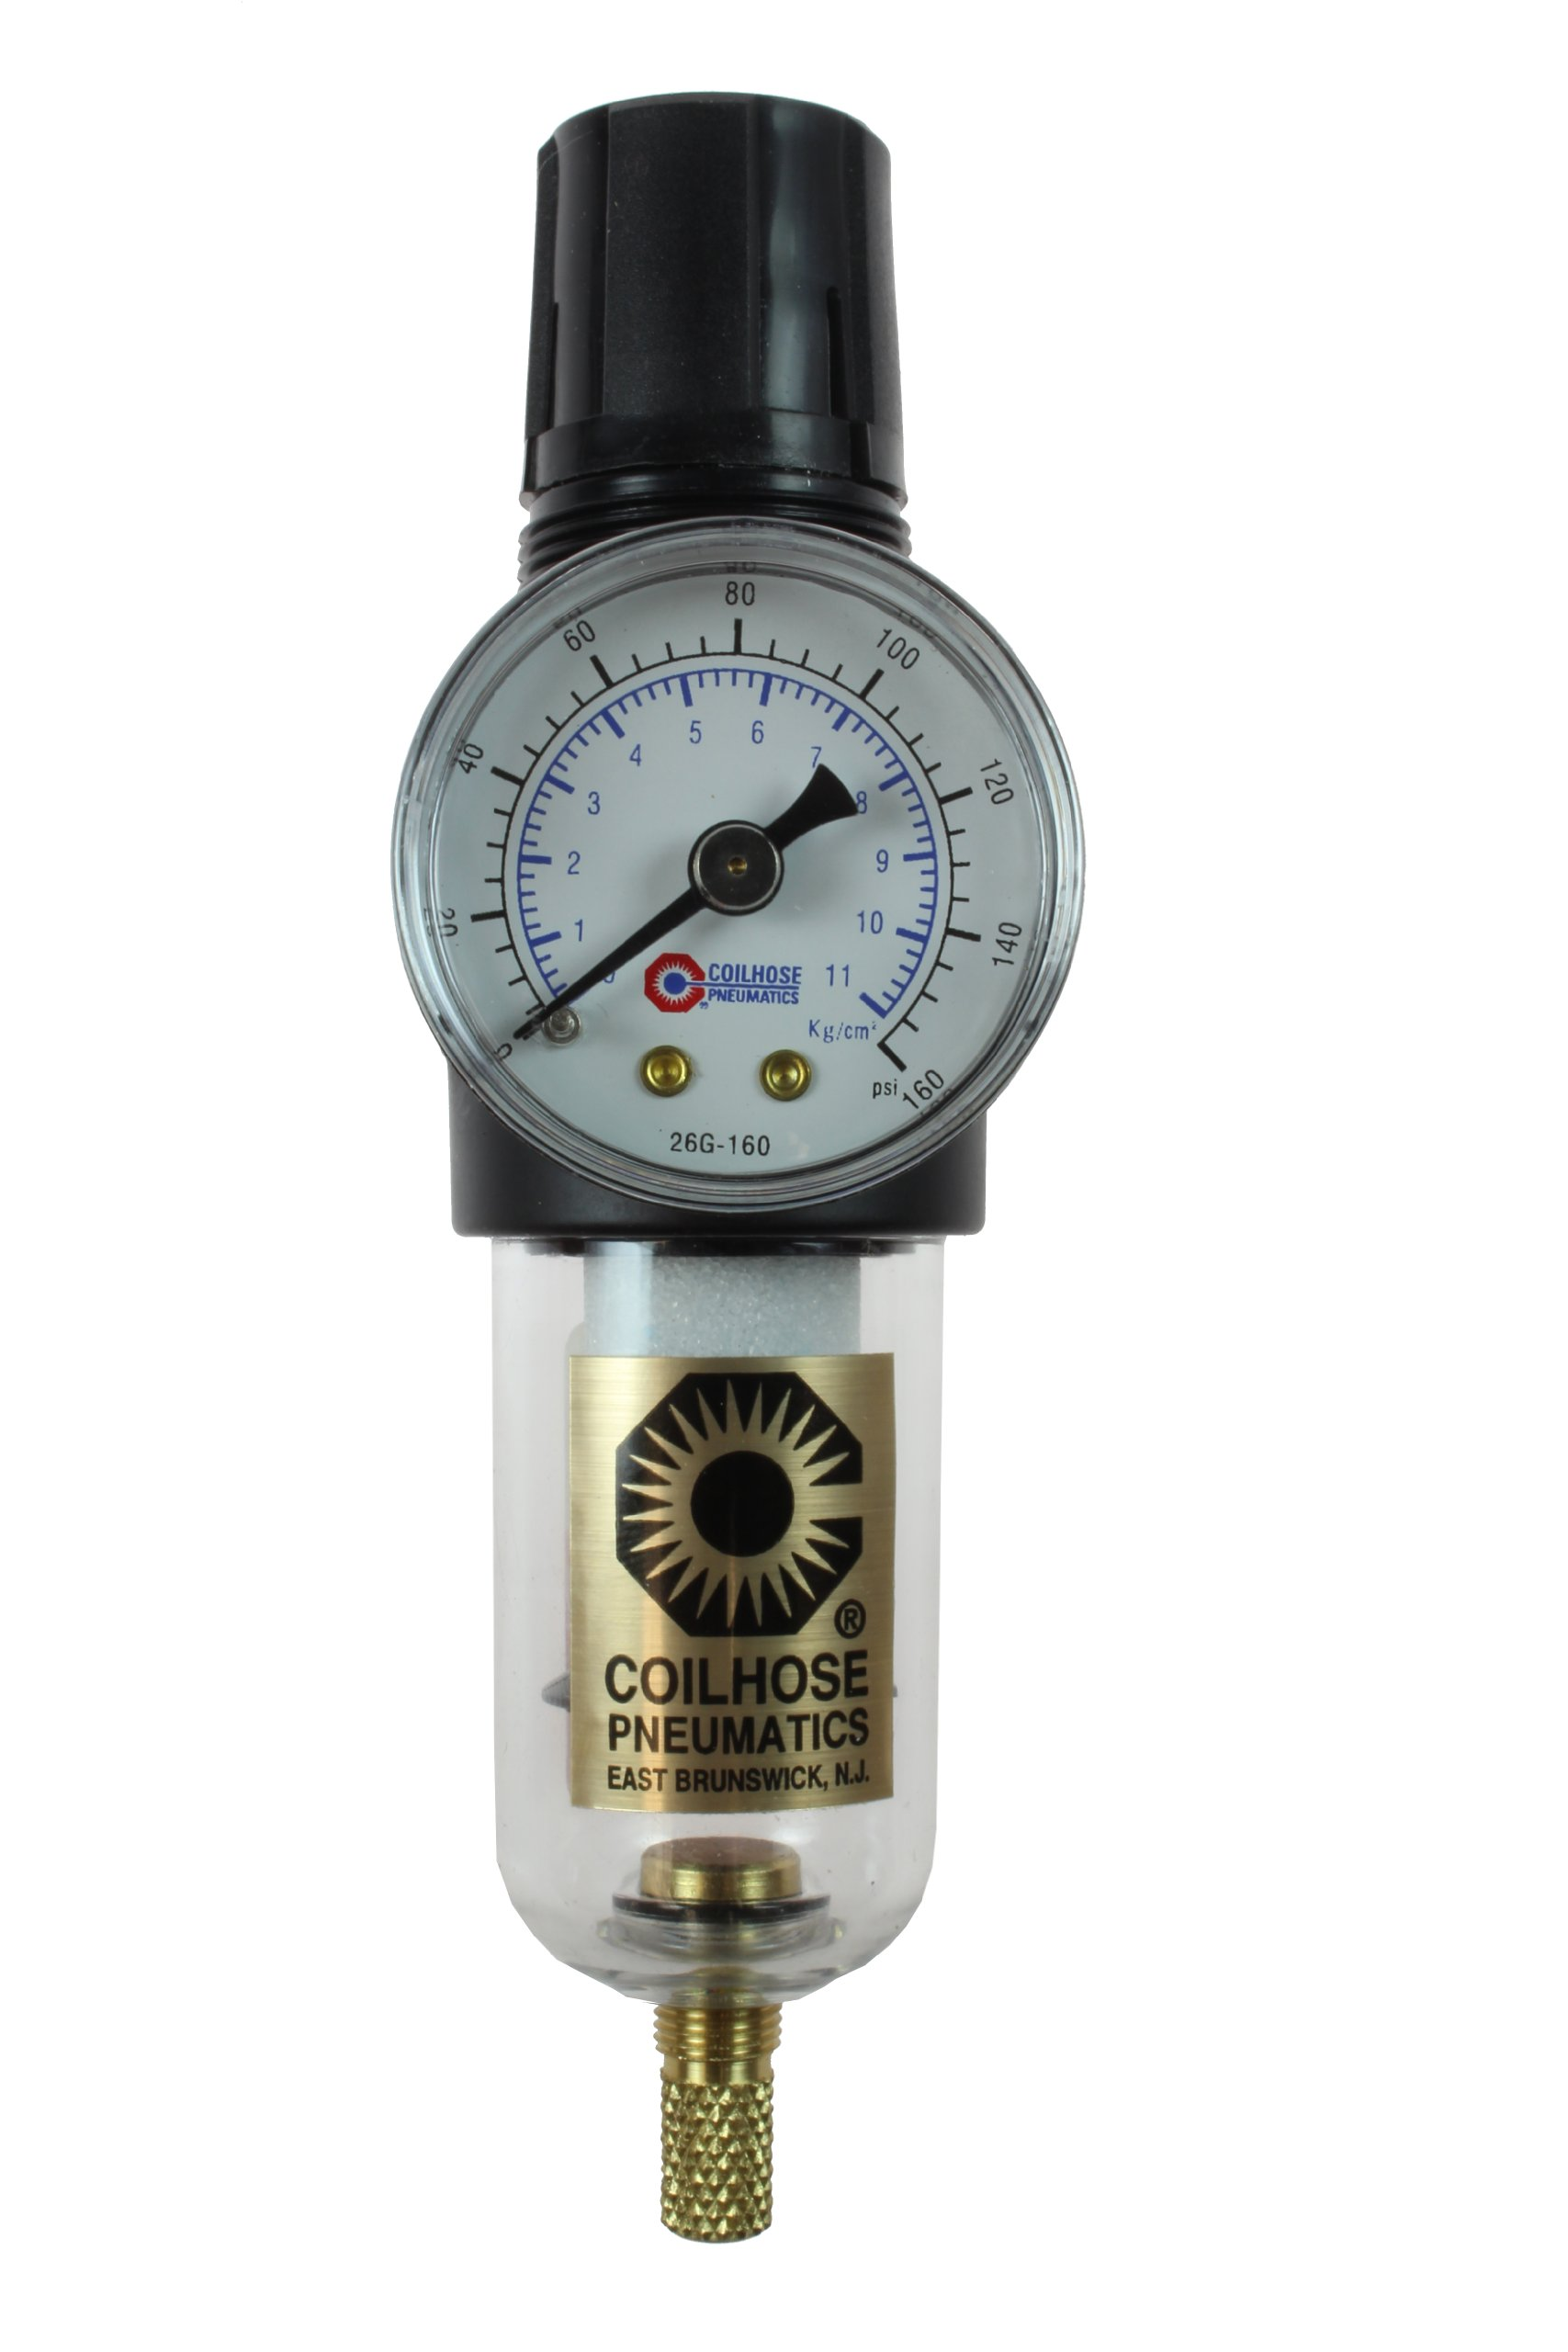 Coilhose Pneumatics MFC2-G Miniature Series Integral Filter Regulator Combo, 1/4-Inch Pipe Size with 0-160 PSI Pressure Gauge by Coilhose Pneumatics